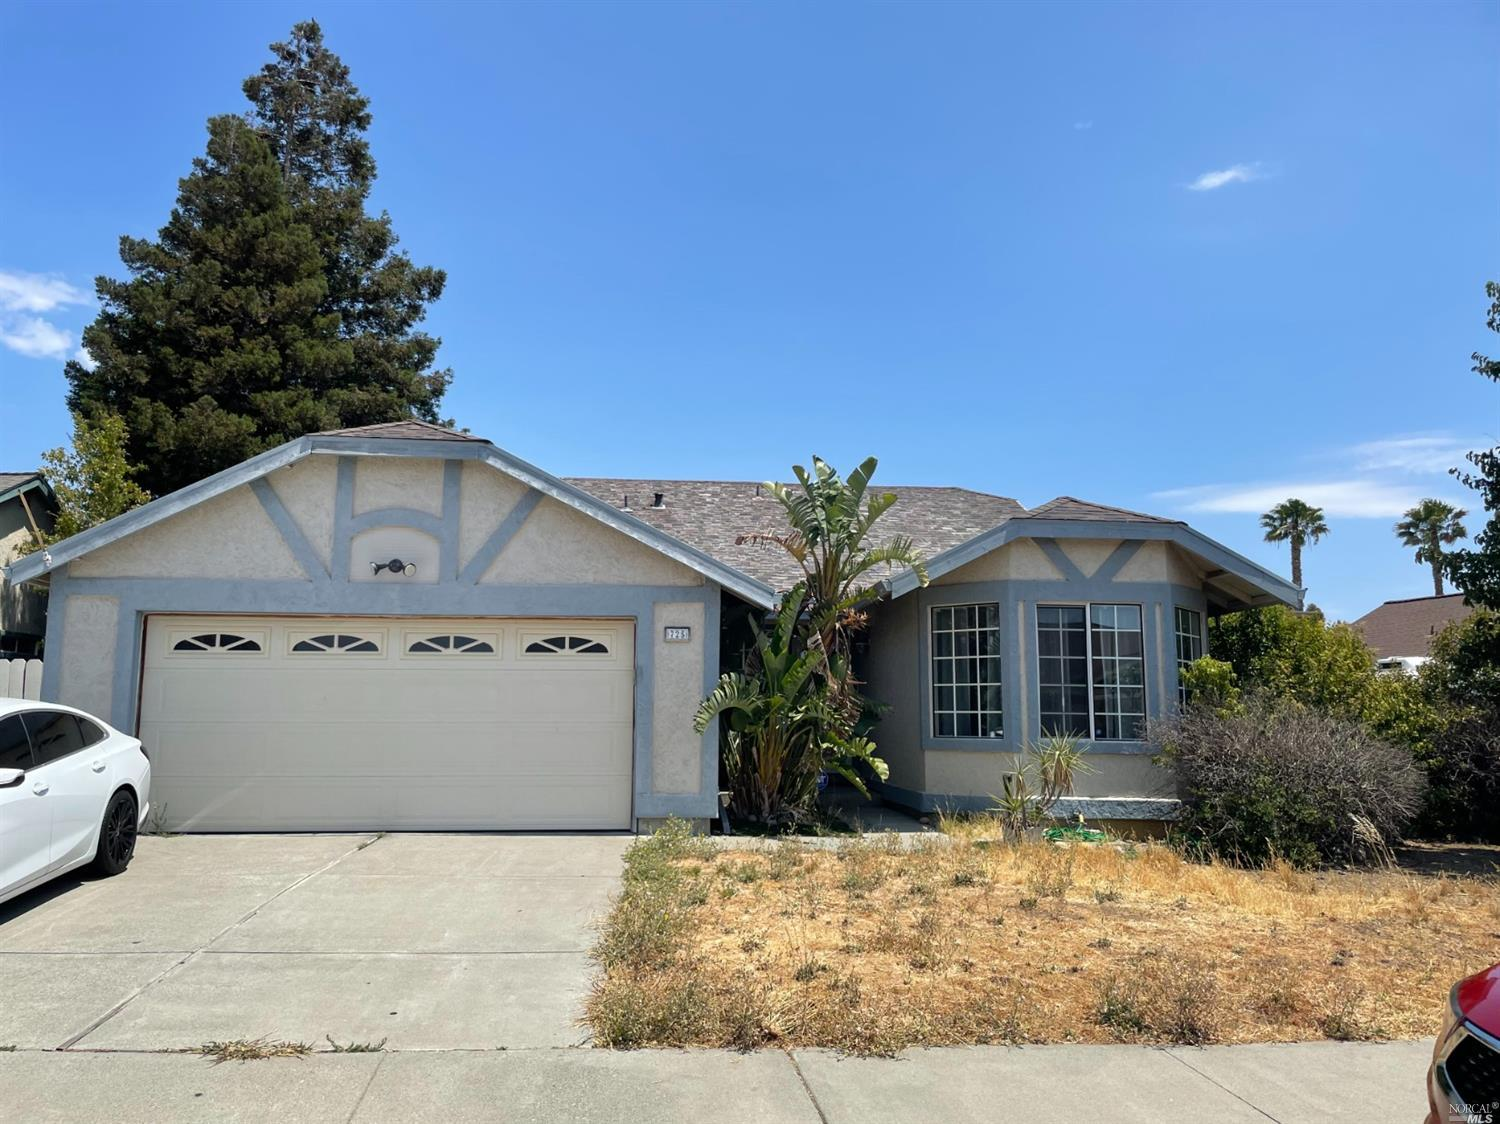 Welcome home to Montebello Vista in Suisun City.  This one level home has 3 bedrooms, 2 bathrooms built in 1990 with over 1400SF.  Desirable floor plan. Living room has fireplace with combination dining room, spacious eat-in kitchen, two closets in master bedroom, 2-car attached garage, fenced yard.